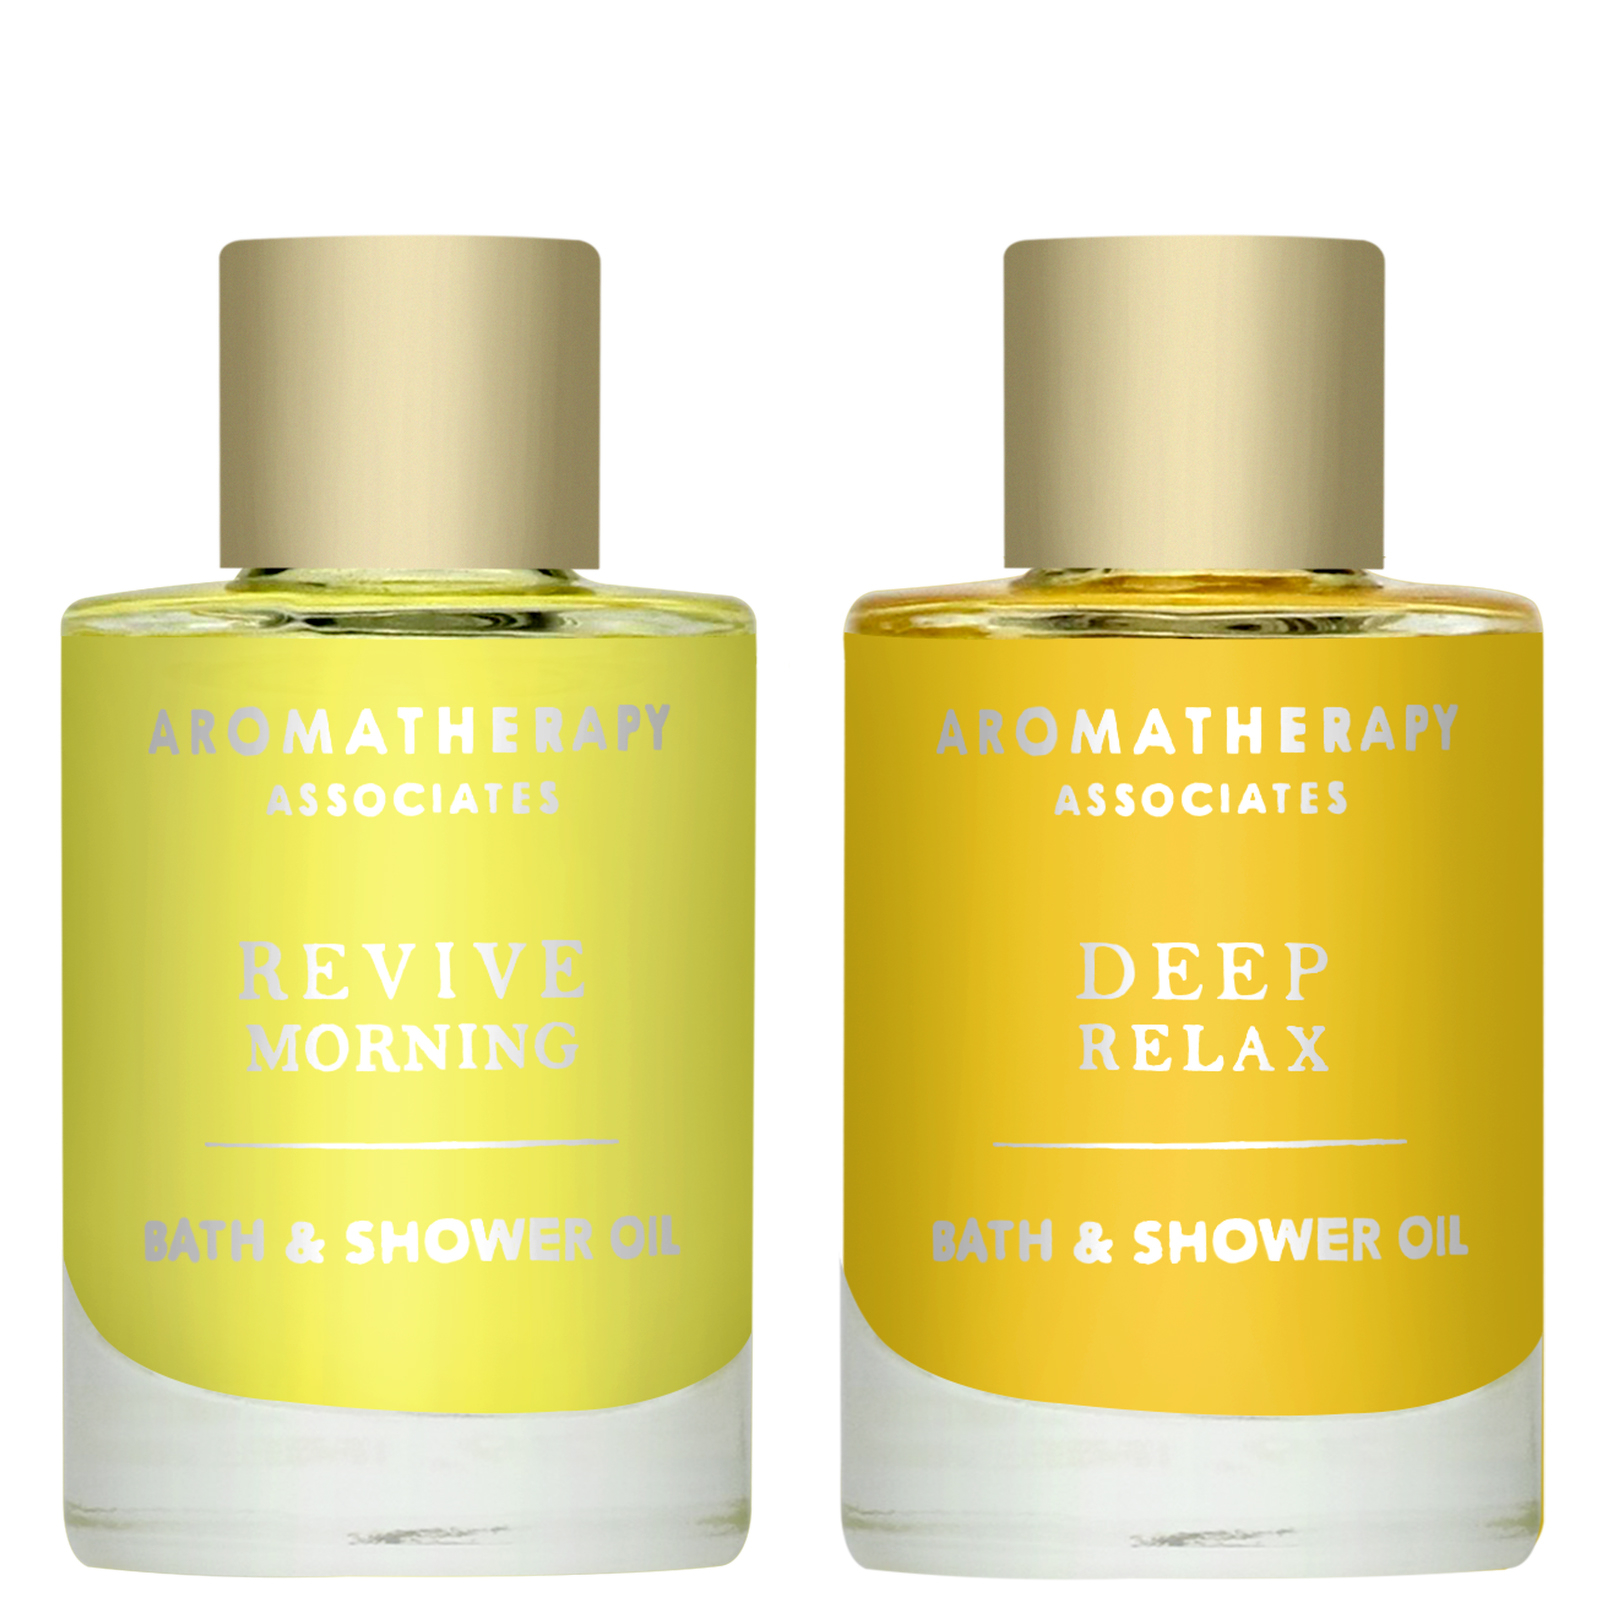 Aromatherapy Associates Gifting Perfect Partners 2 x 9ml